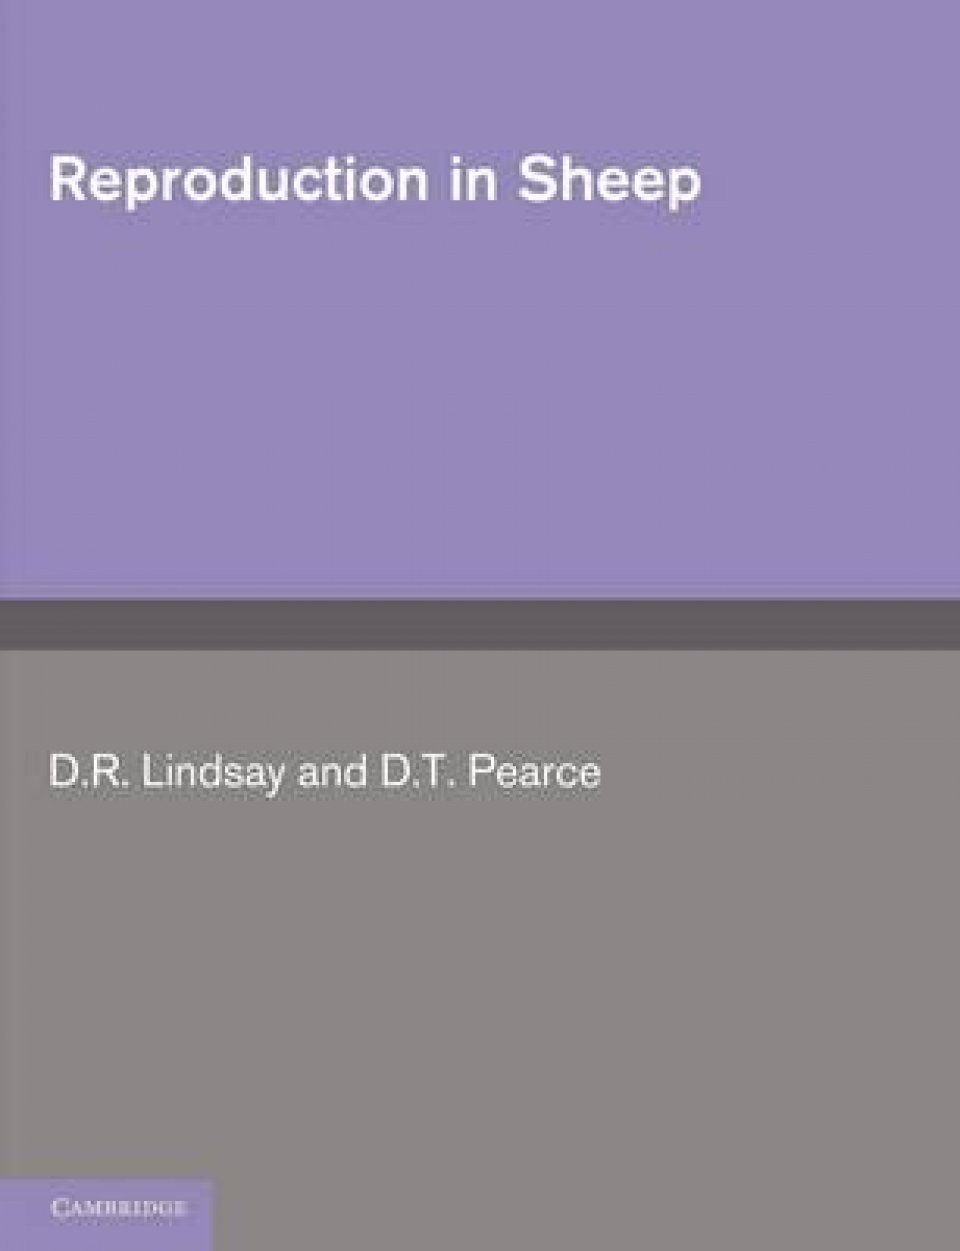 Reproduction in Sheep